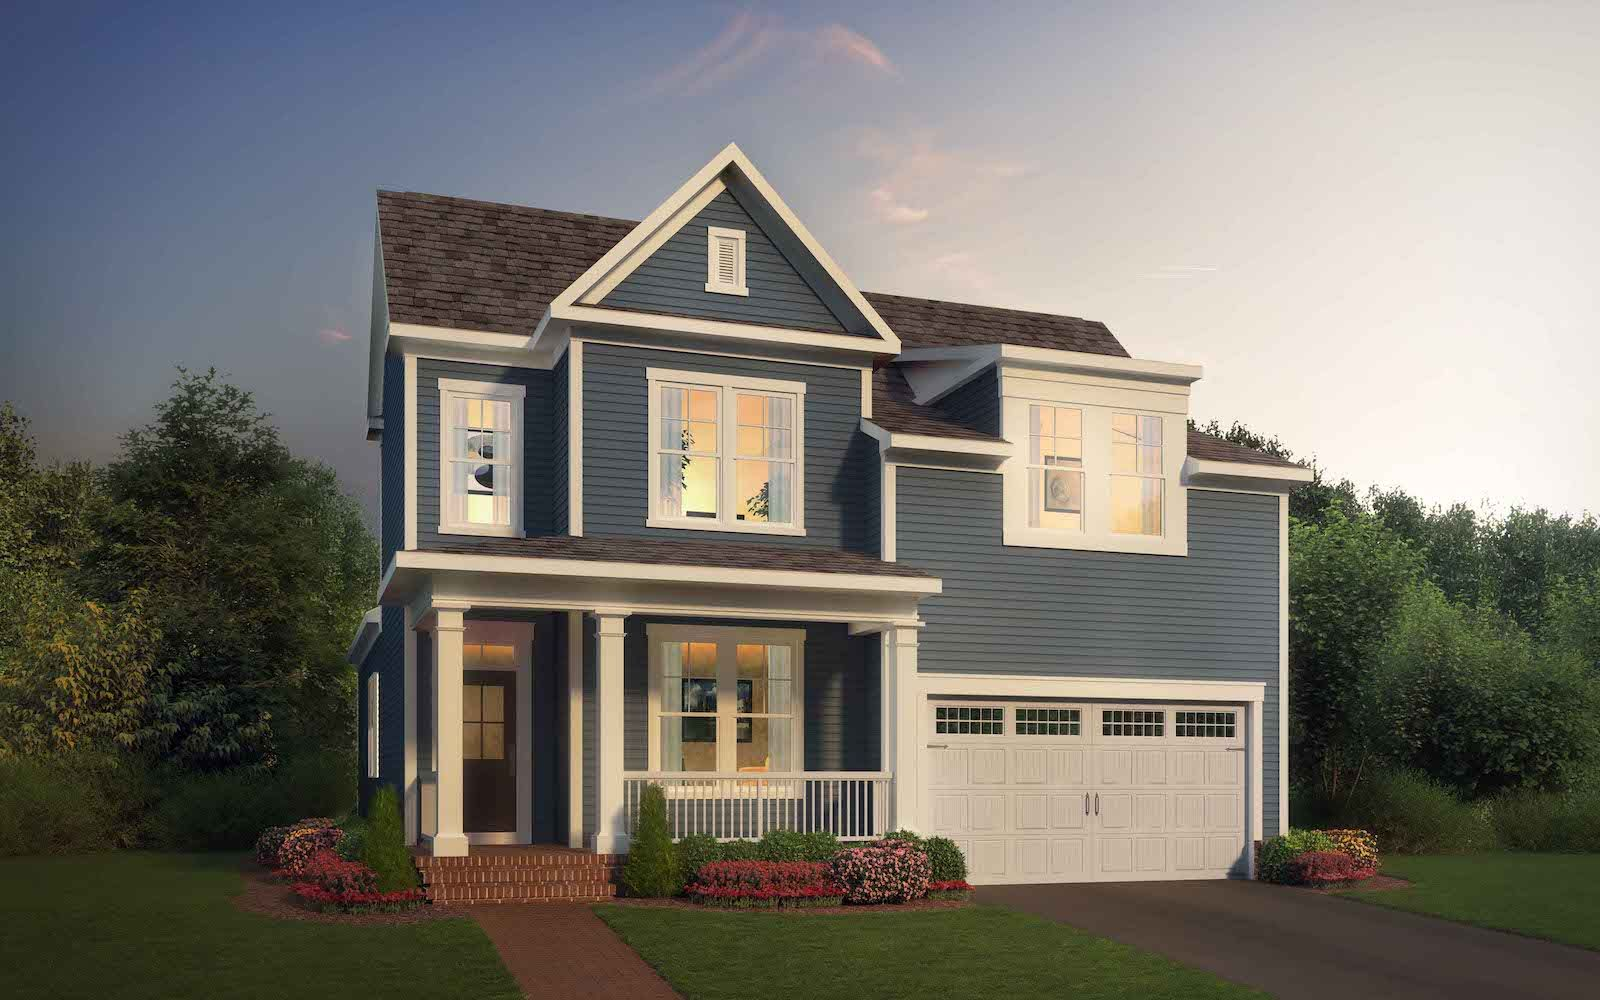 Exterior:Elevation 1 of the Torrington a home design by Brookfield Residential at Ridgeview